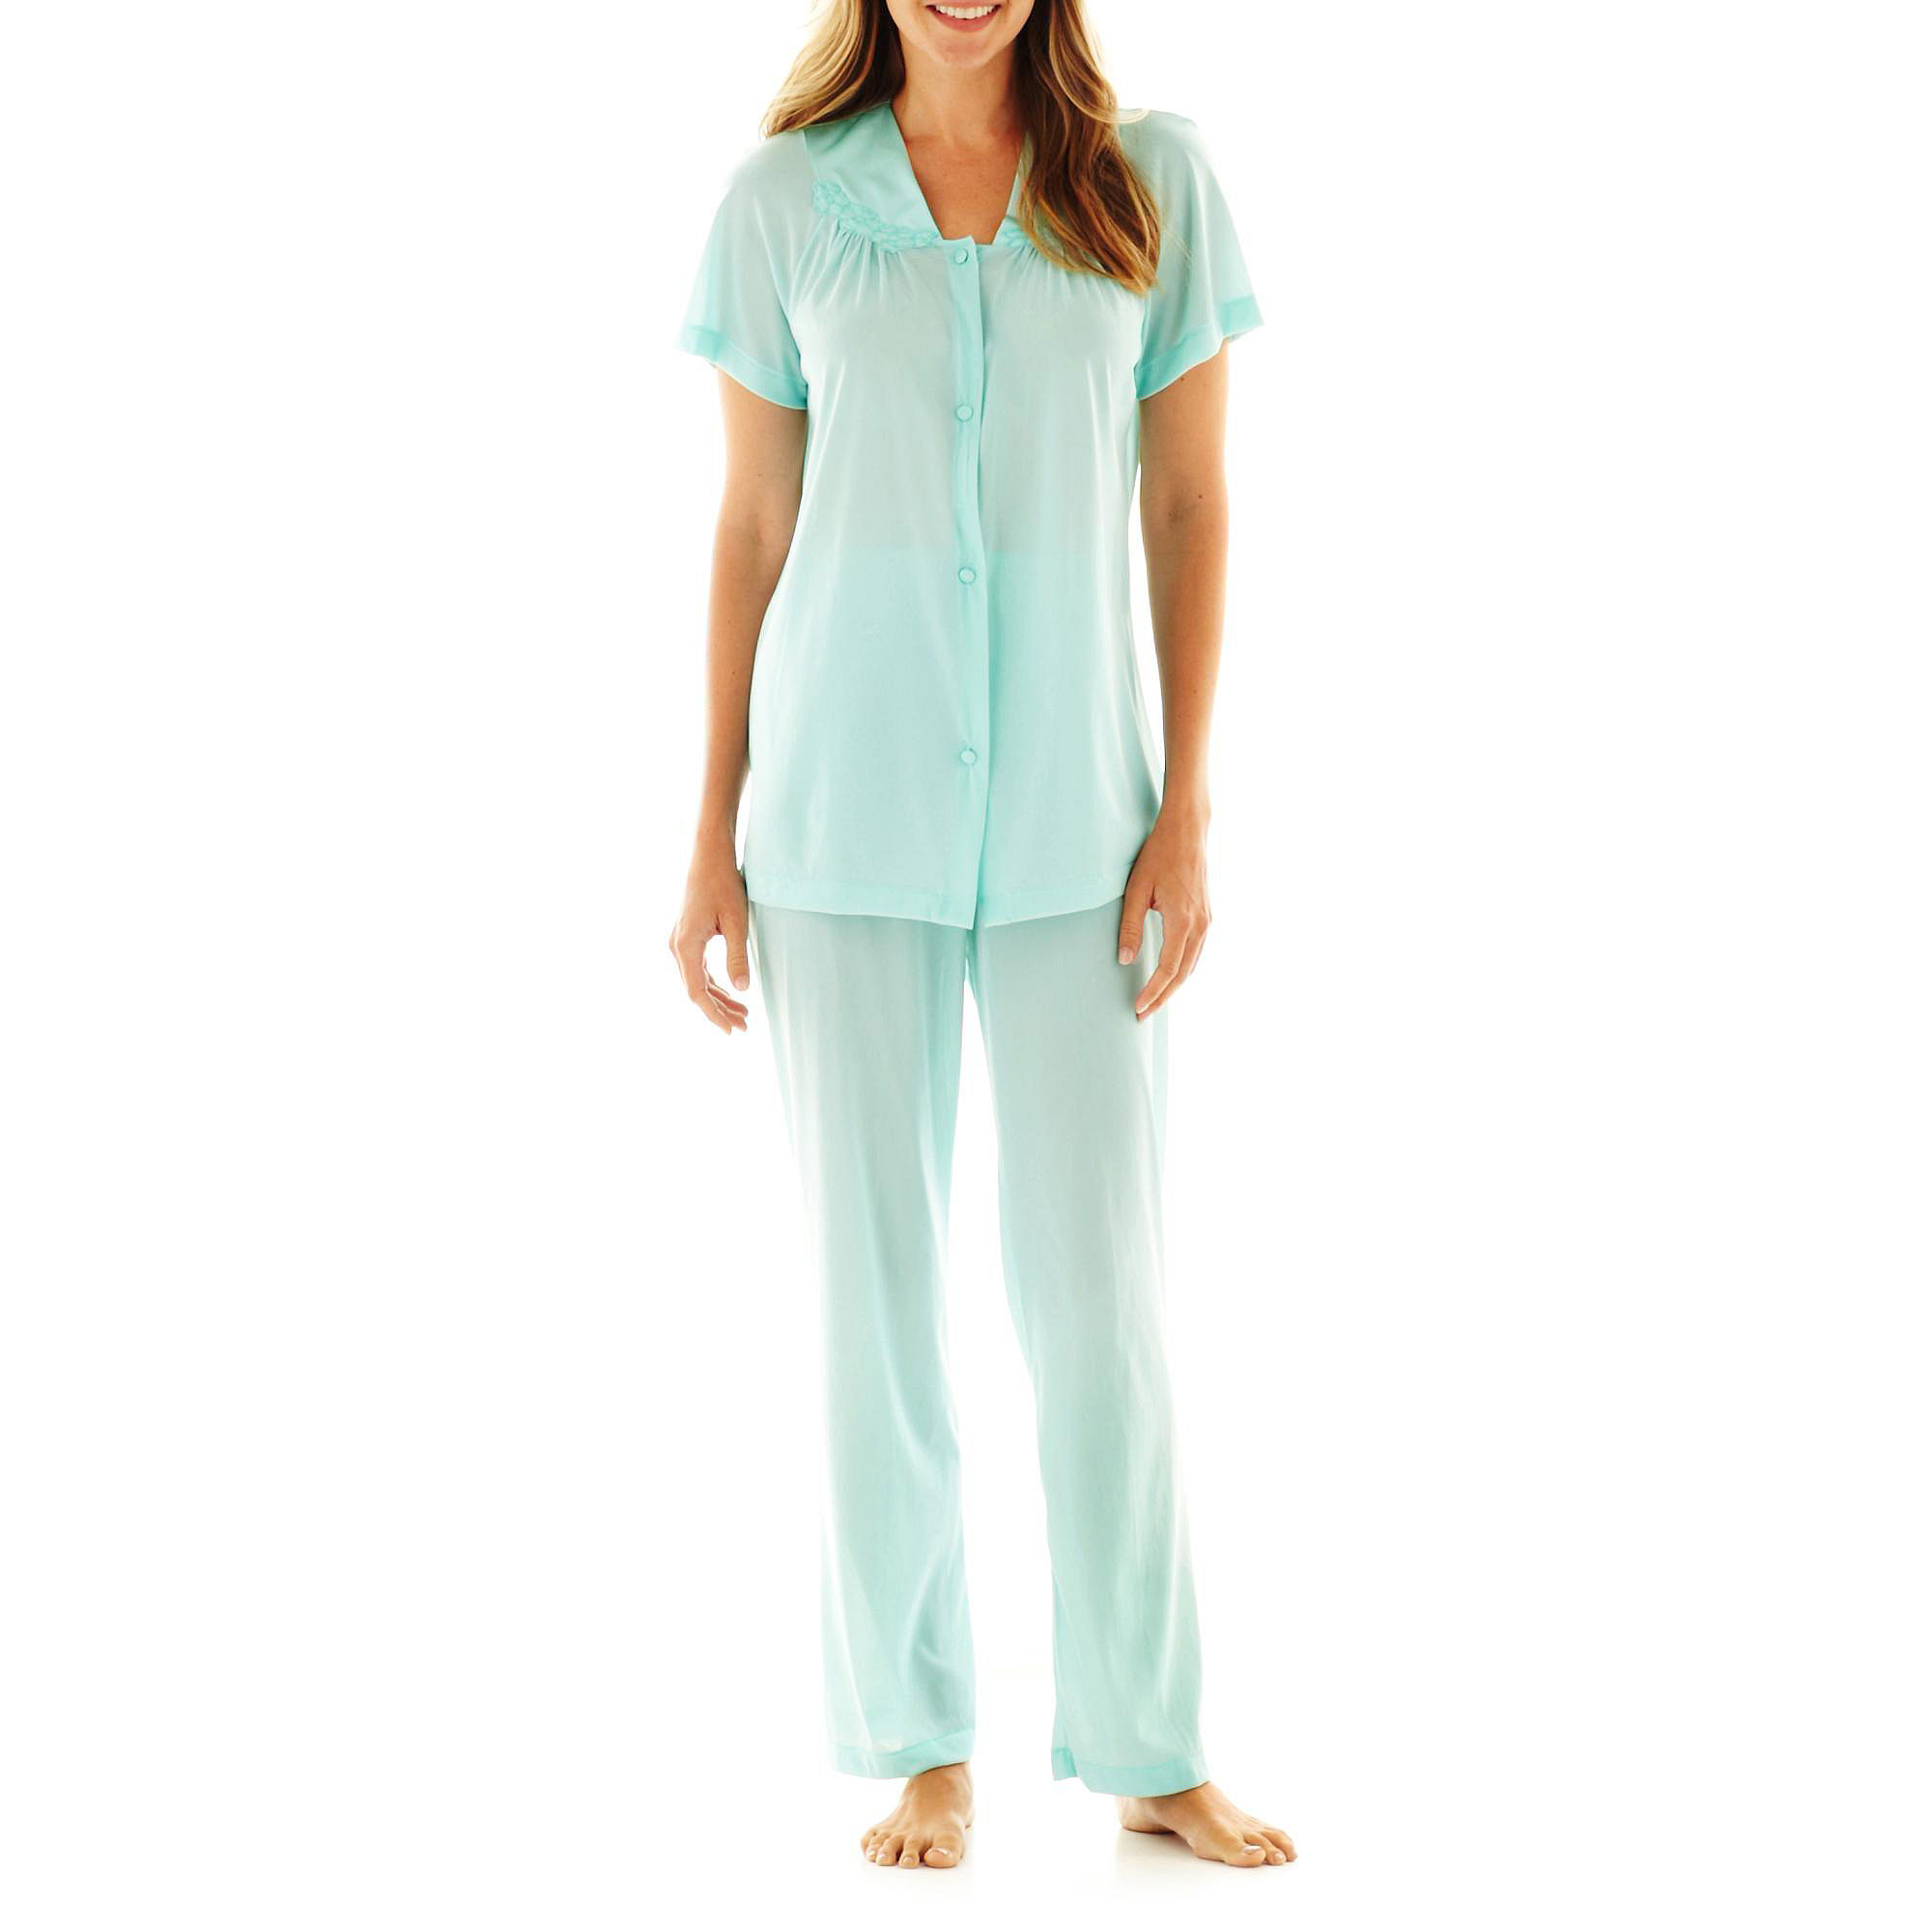 "Vanity Fair Coloratura"" Pajama Set - 90107 - Plus plus size,  plus size fashion plus size appare"